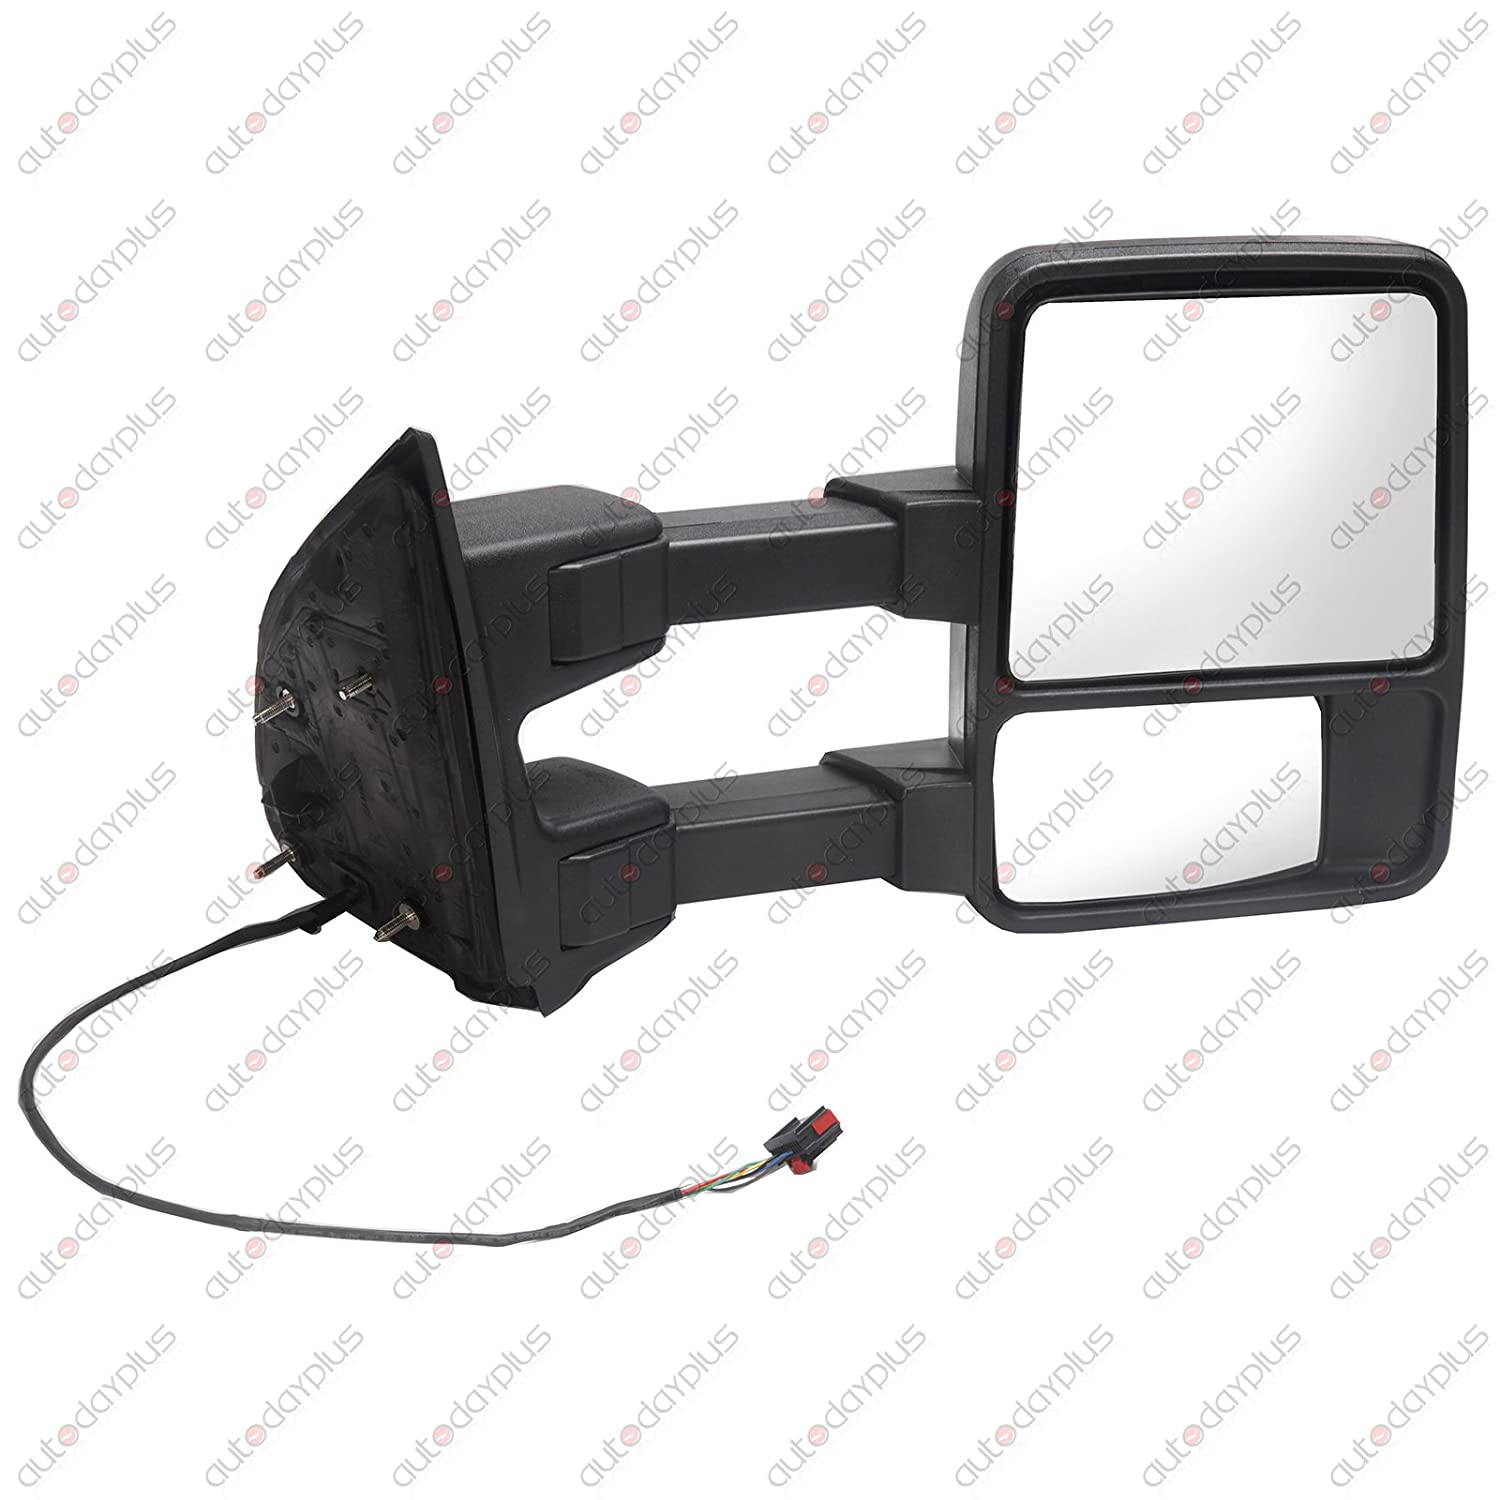 SCITOO Passenger Side View Mirror Manual Led Smoke Signal Lamps Towing Mirror fit 2008-2016 Ford F250 F350 F450 F550 Super Duty Pickup